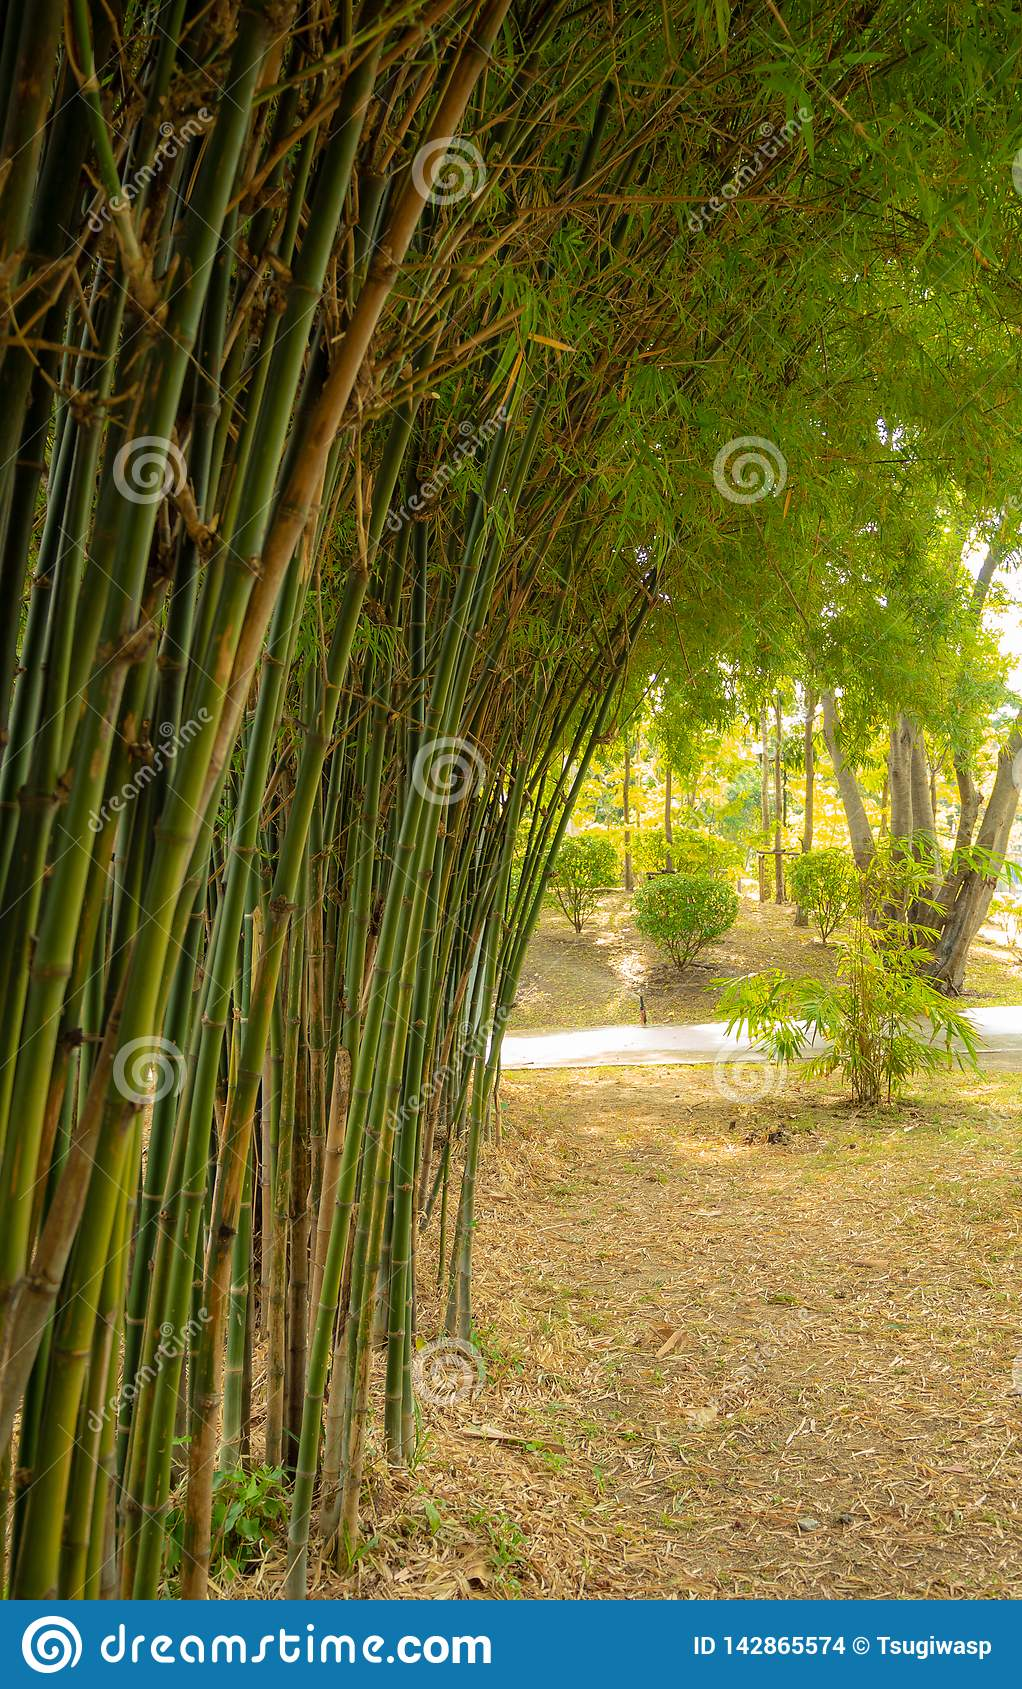 Bamboo forest with natural light in garden